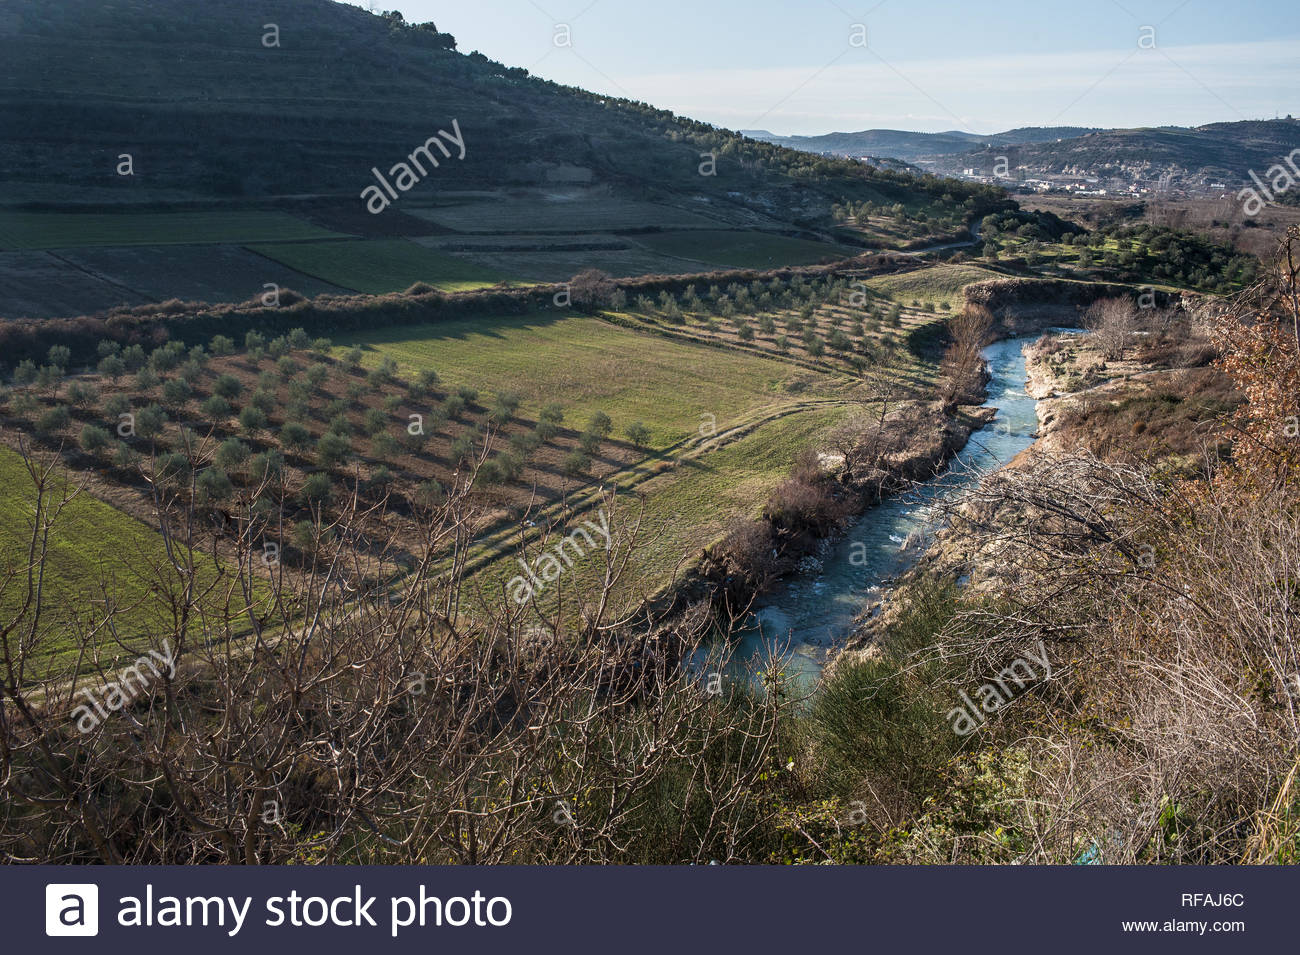 The Luni River before to enter in the Patos-Marinza, Fier, Albania, polluted area - Stock Image